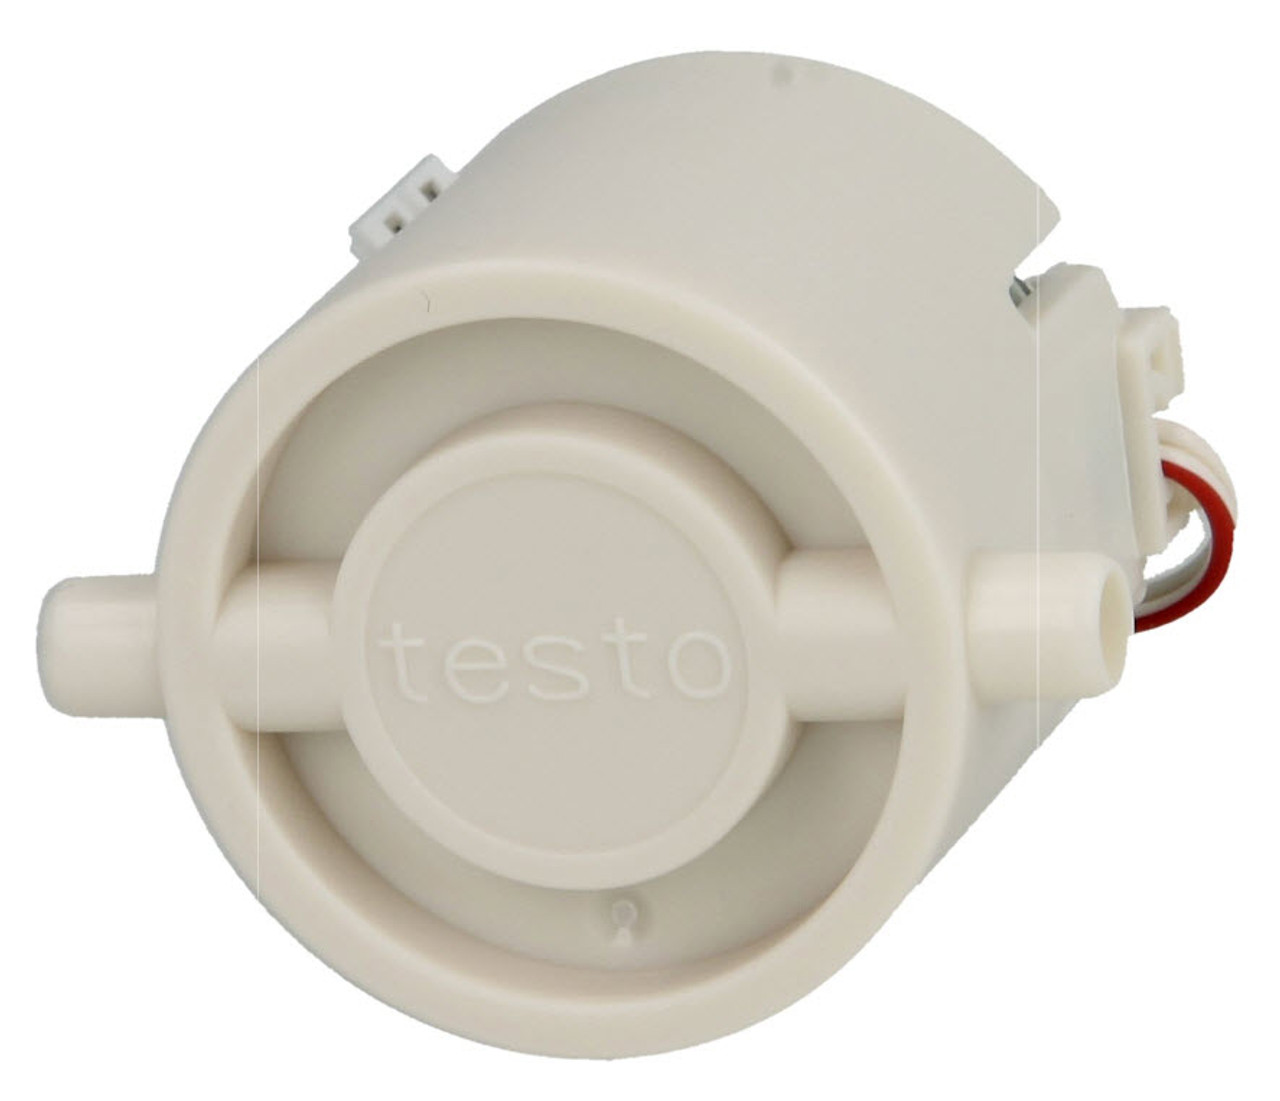 Spare oxygen measuring cell for Testo 327-1 03900047